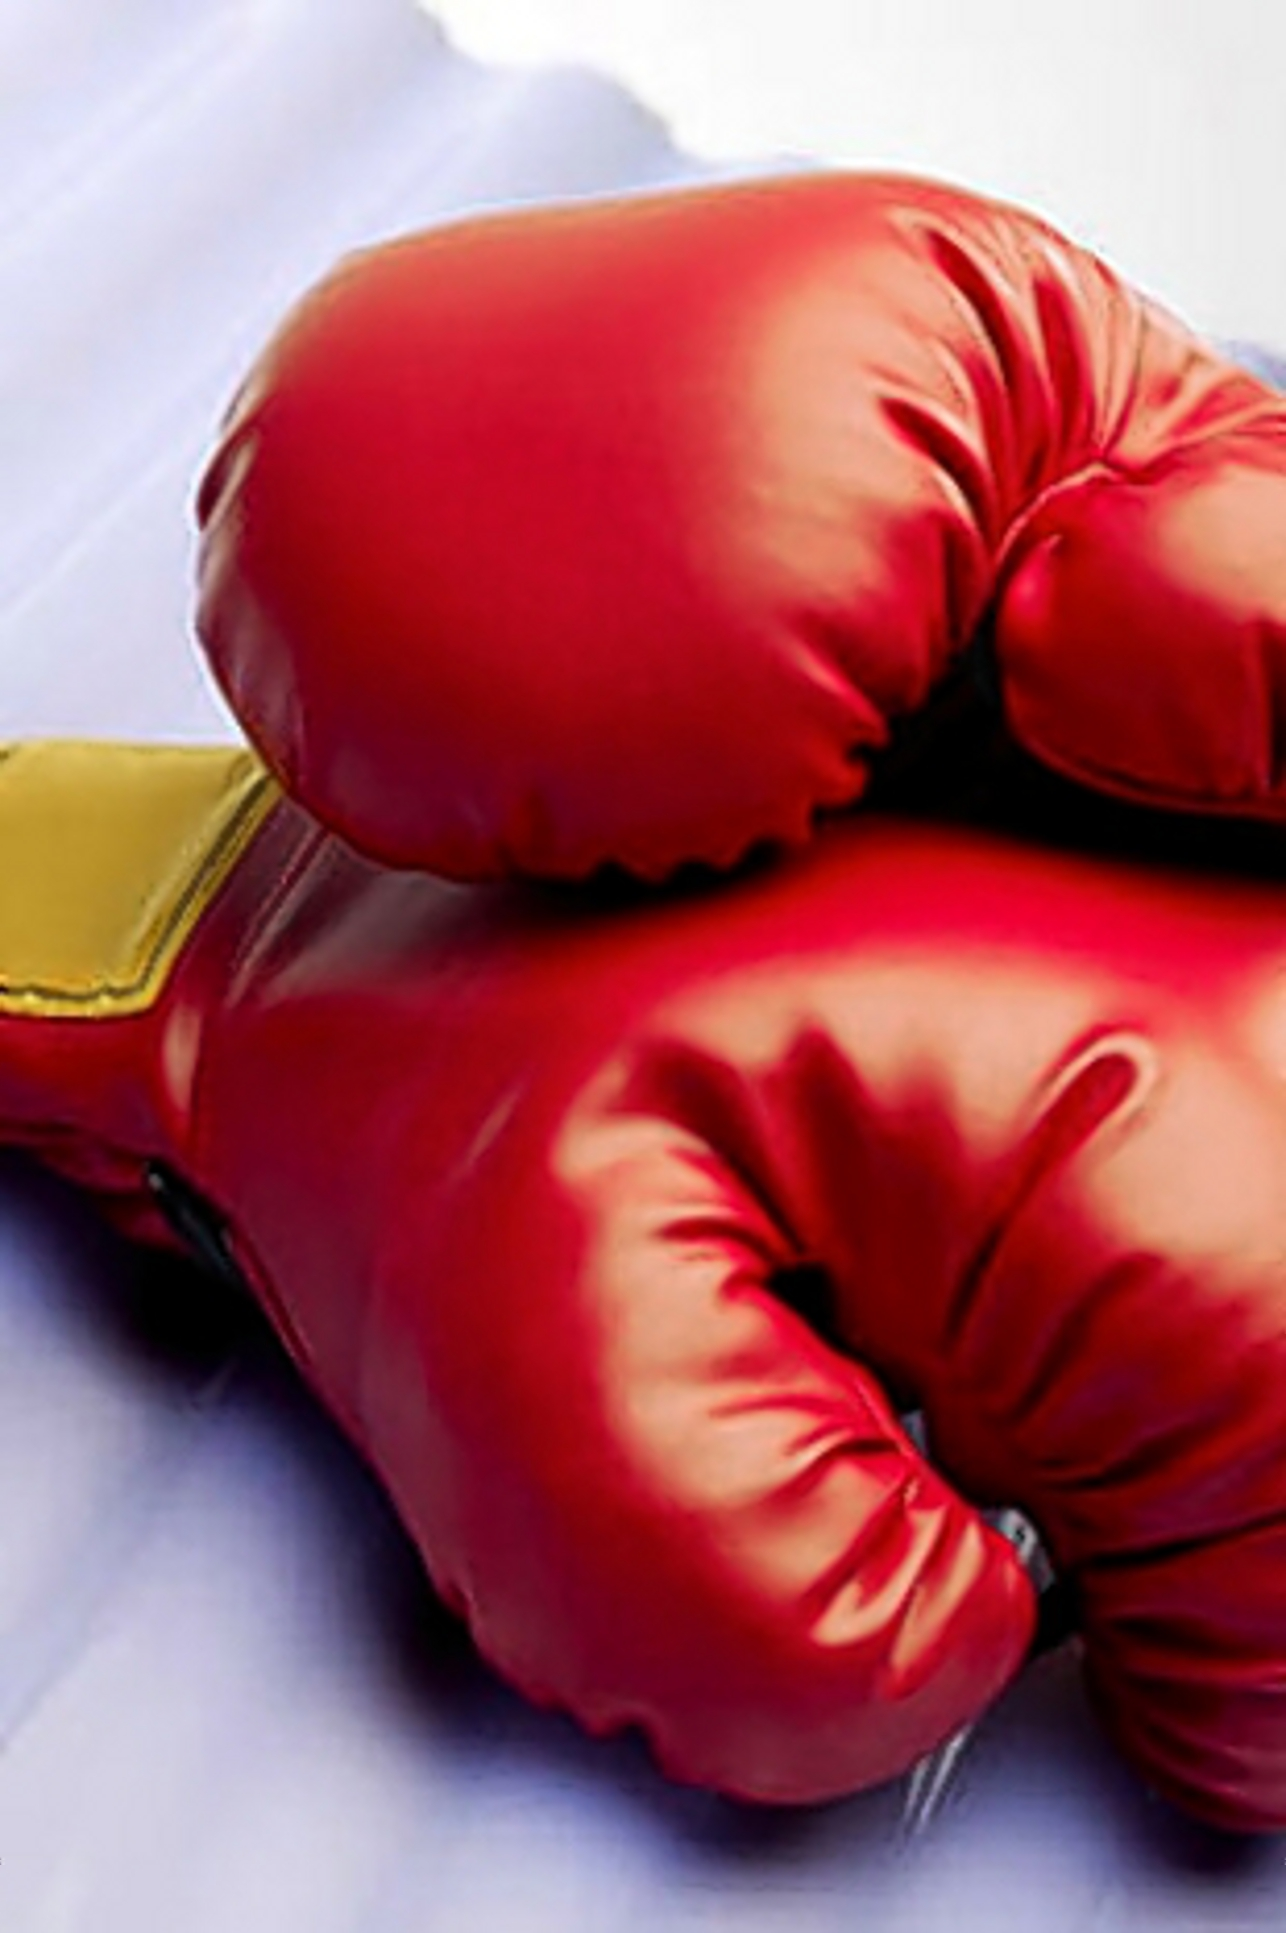 Boxer forced to give up sport after attack